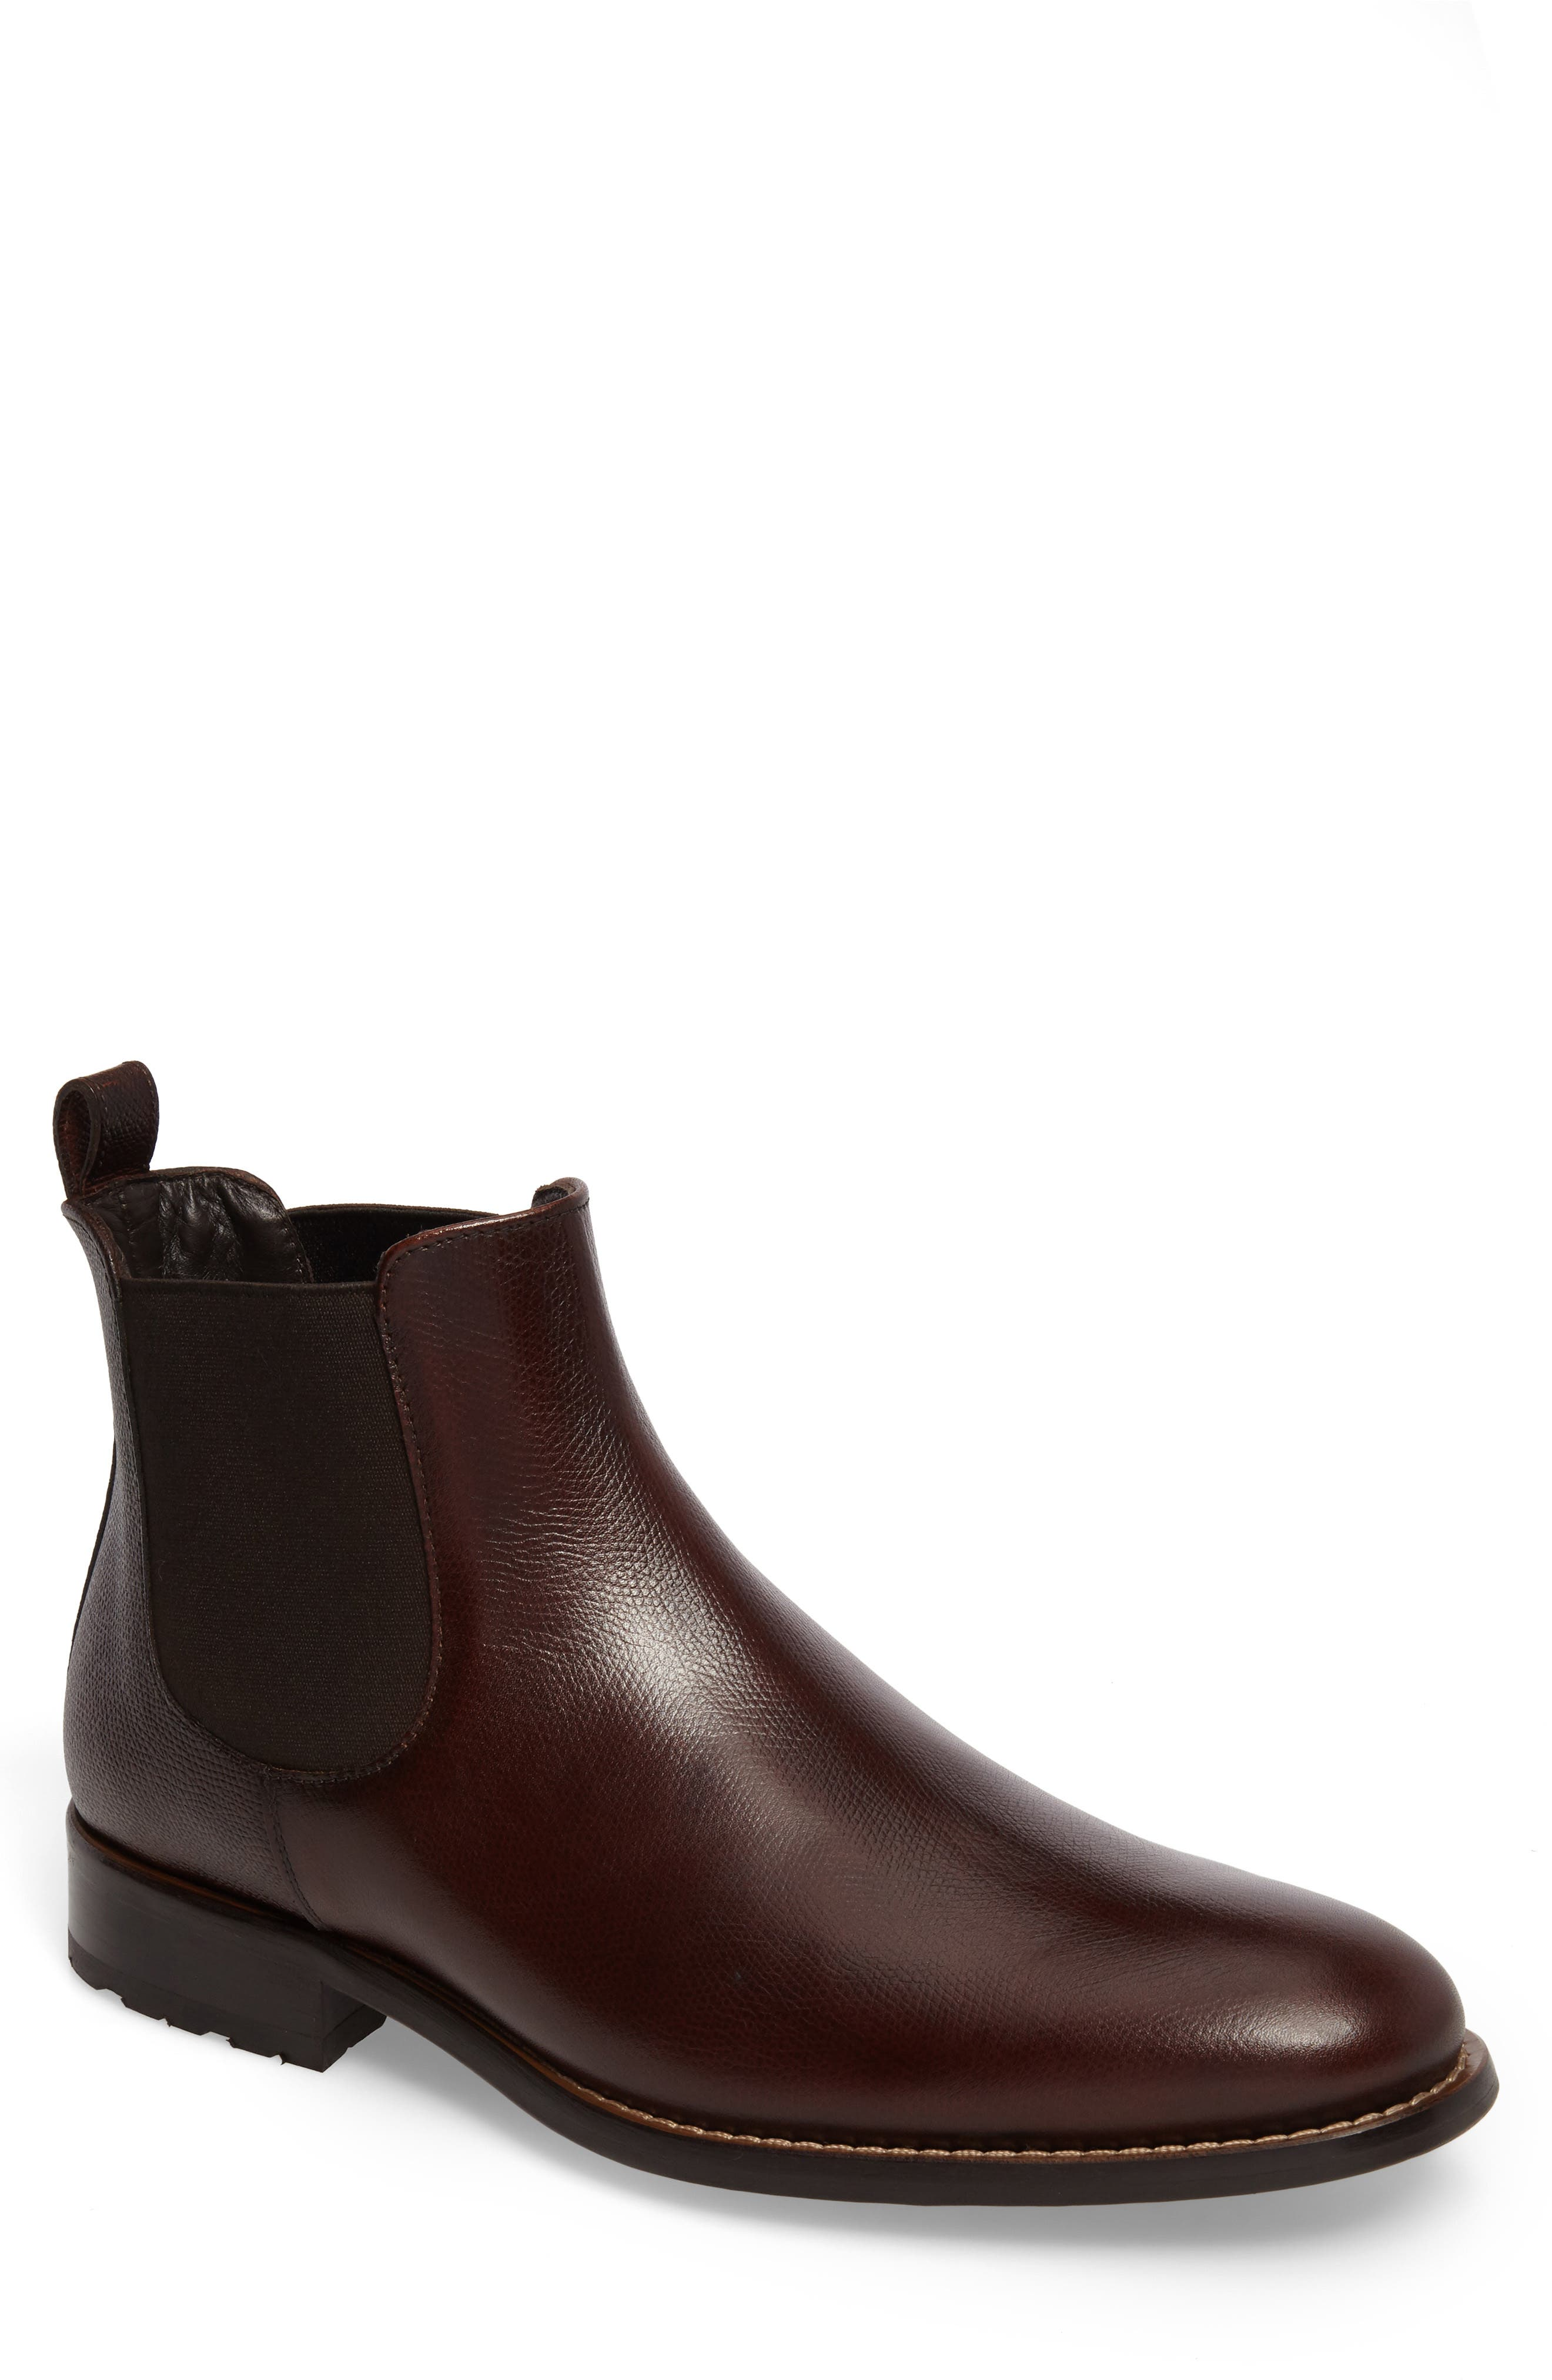 Savoy Chelsea Boot,                         Main,                         color, 243